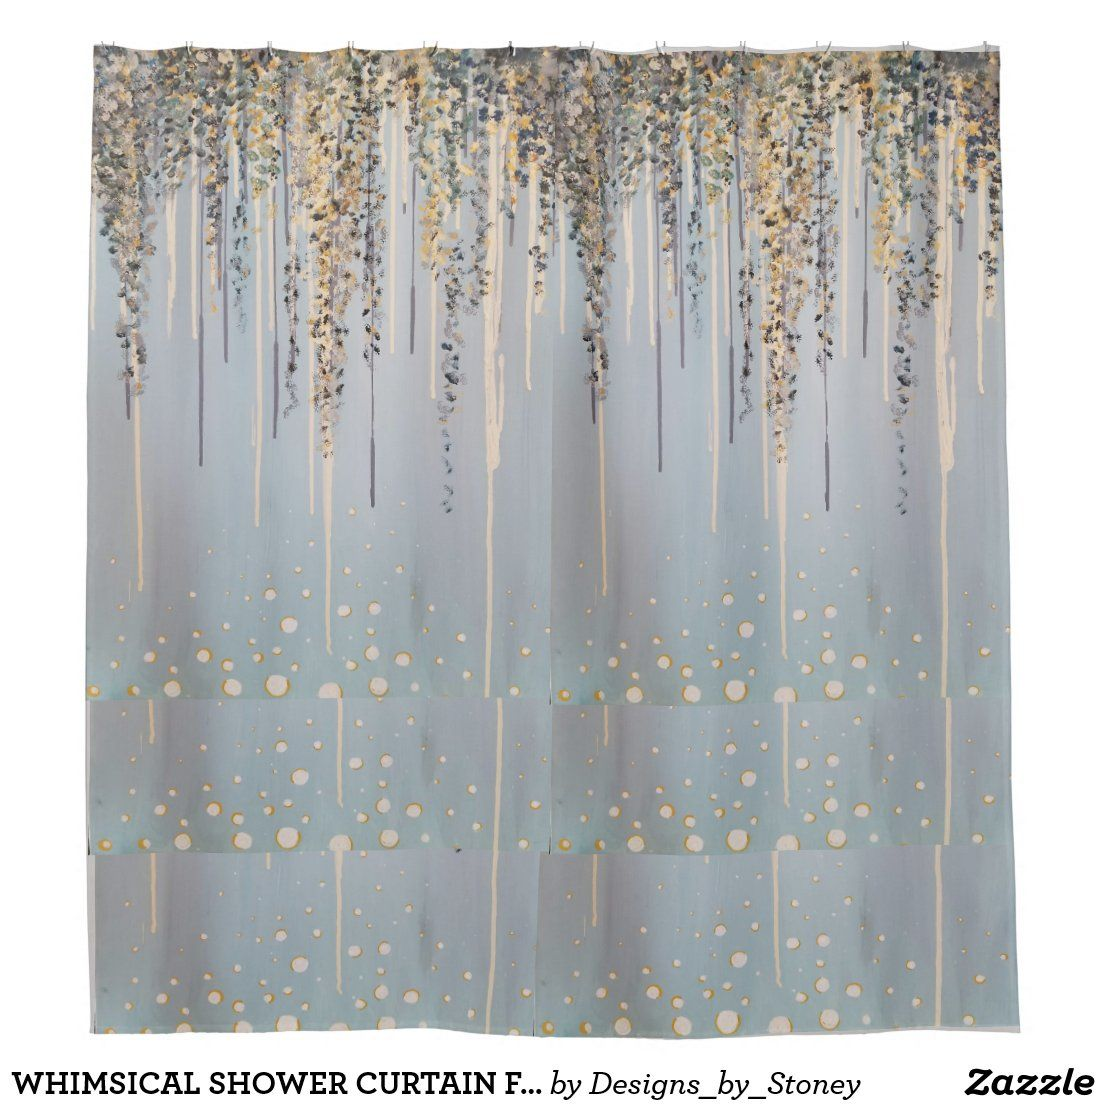 Whimsical Shower Curtain Floral And Bubbles In 2020 Printed